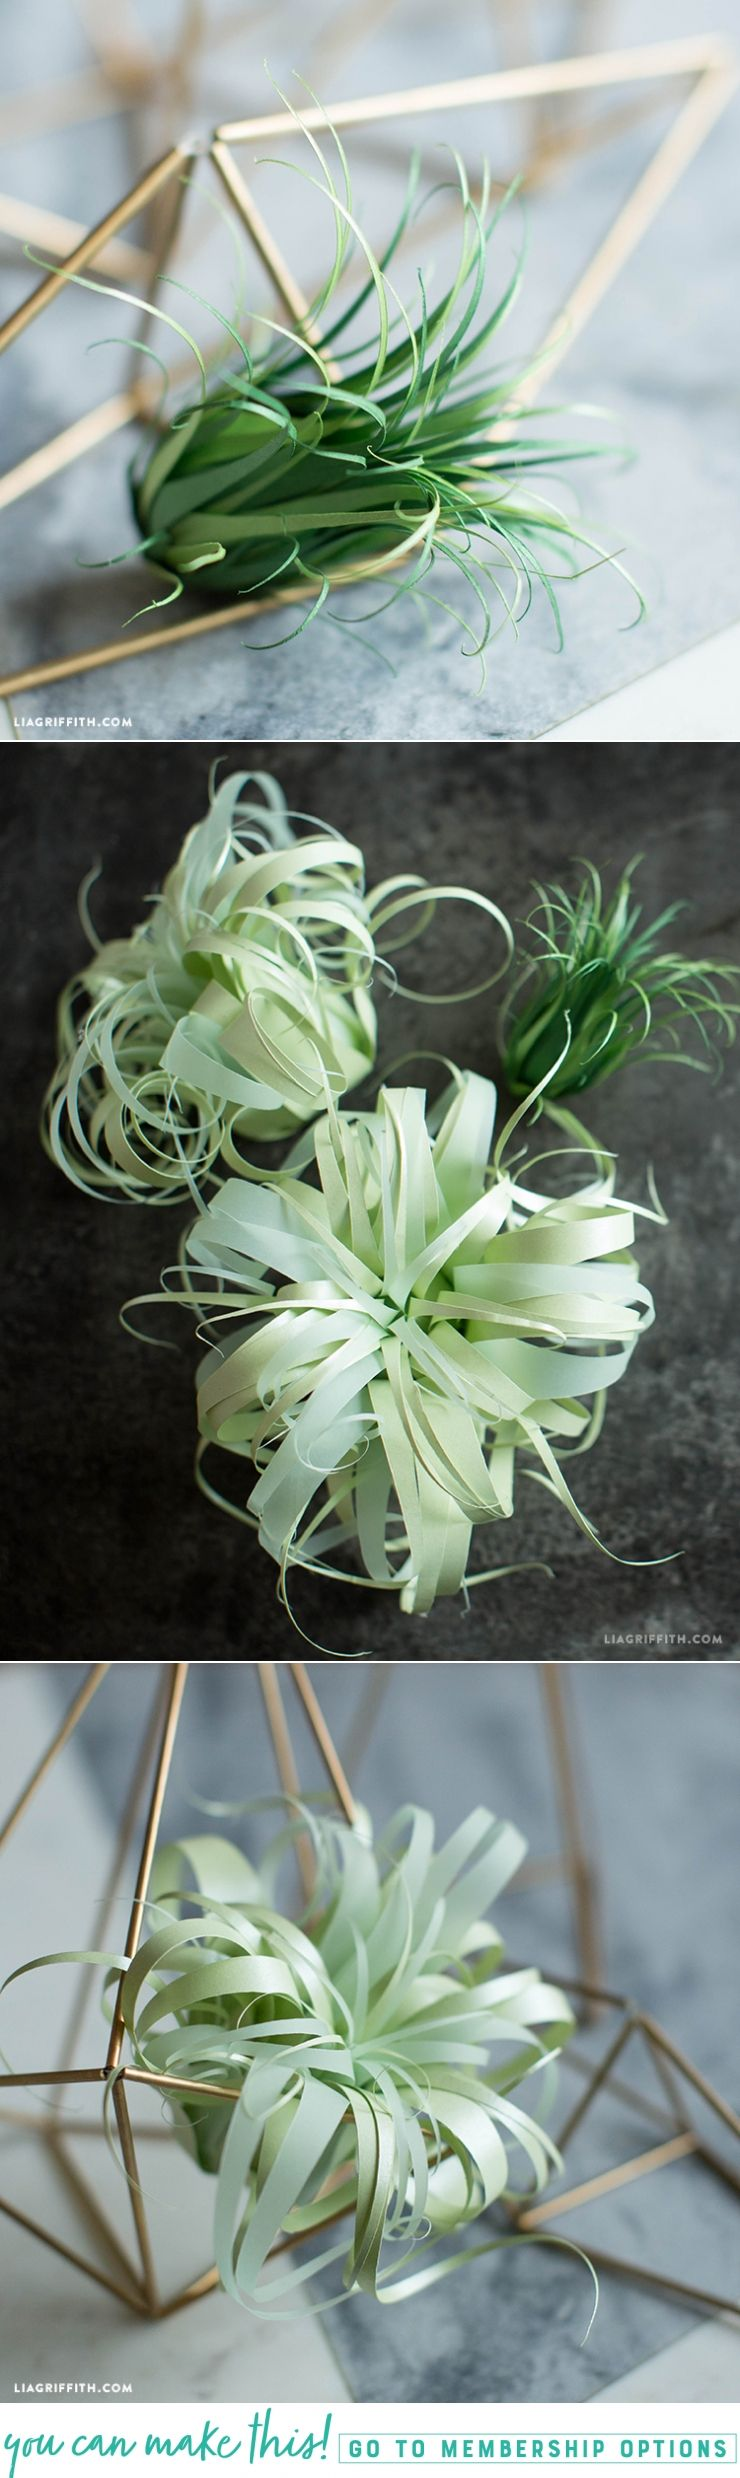 Vellum paper air plants tutorials patterns and flowers vellum paper air plants mightylinksfo